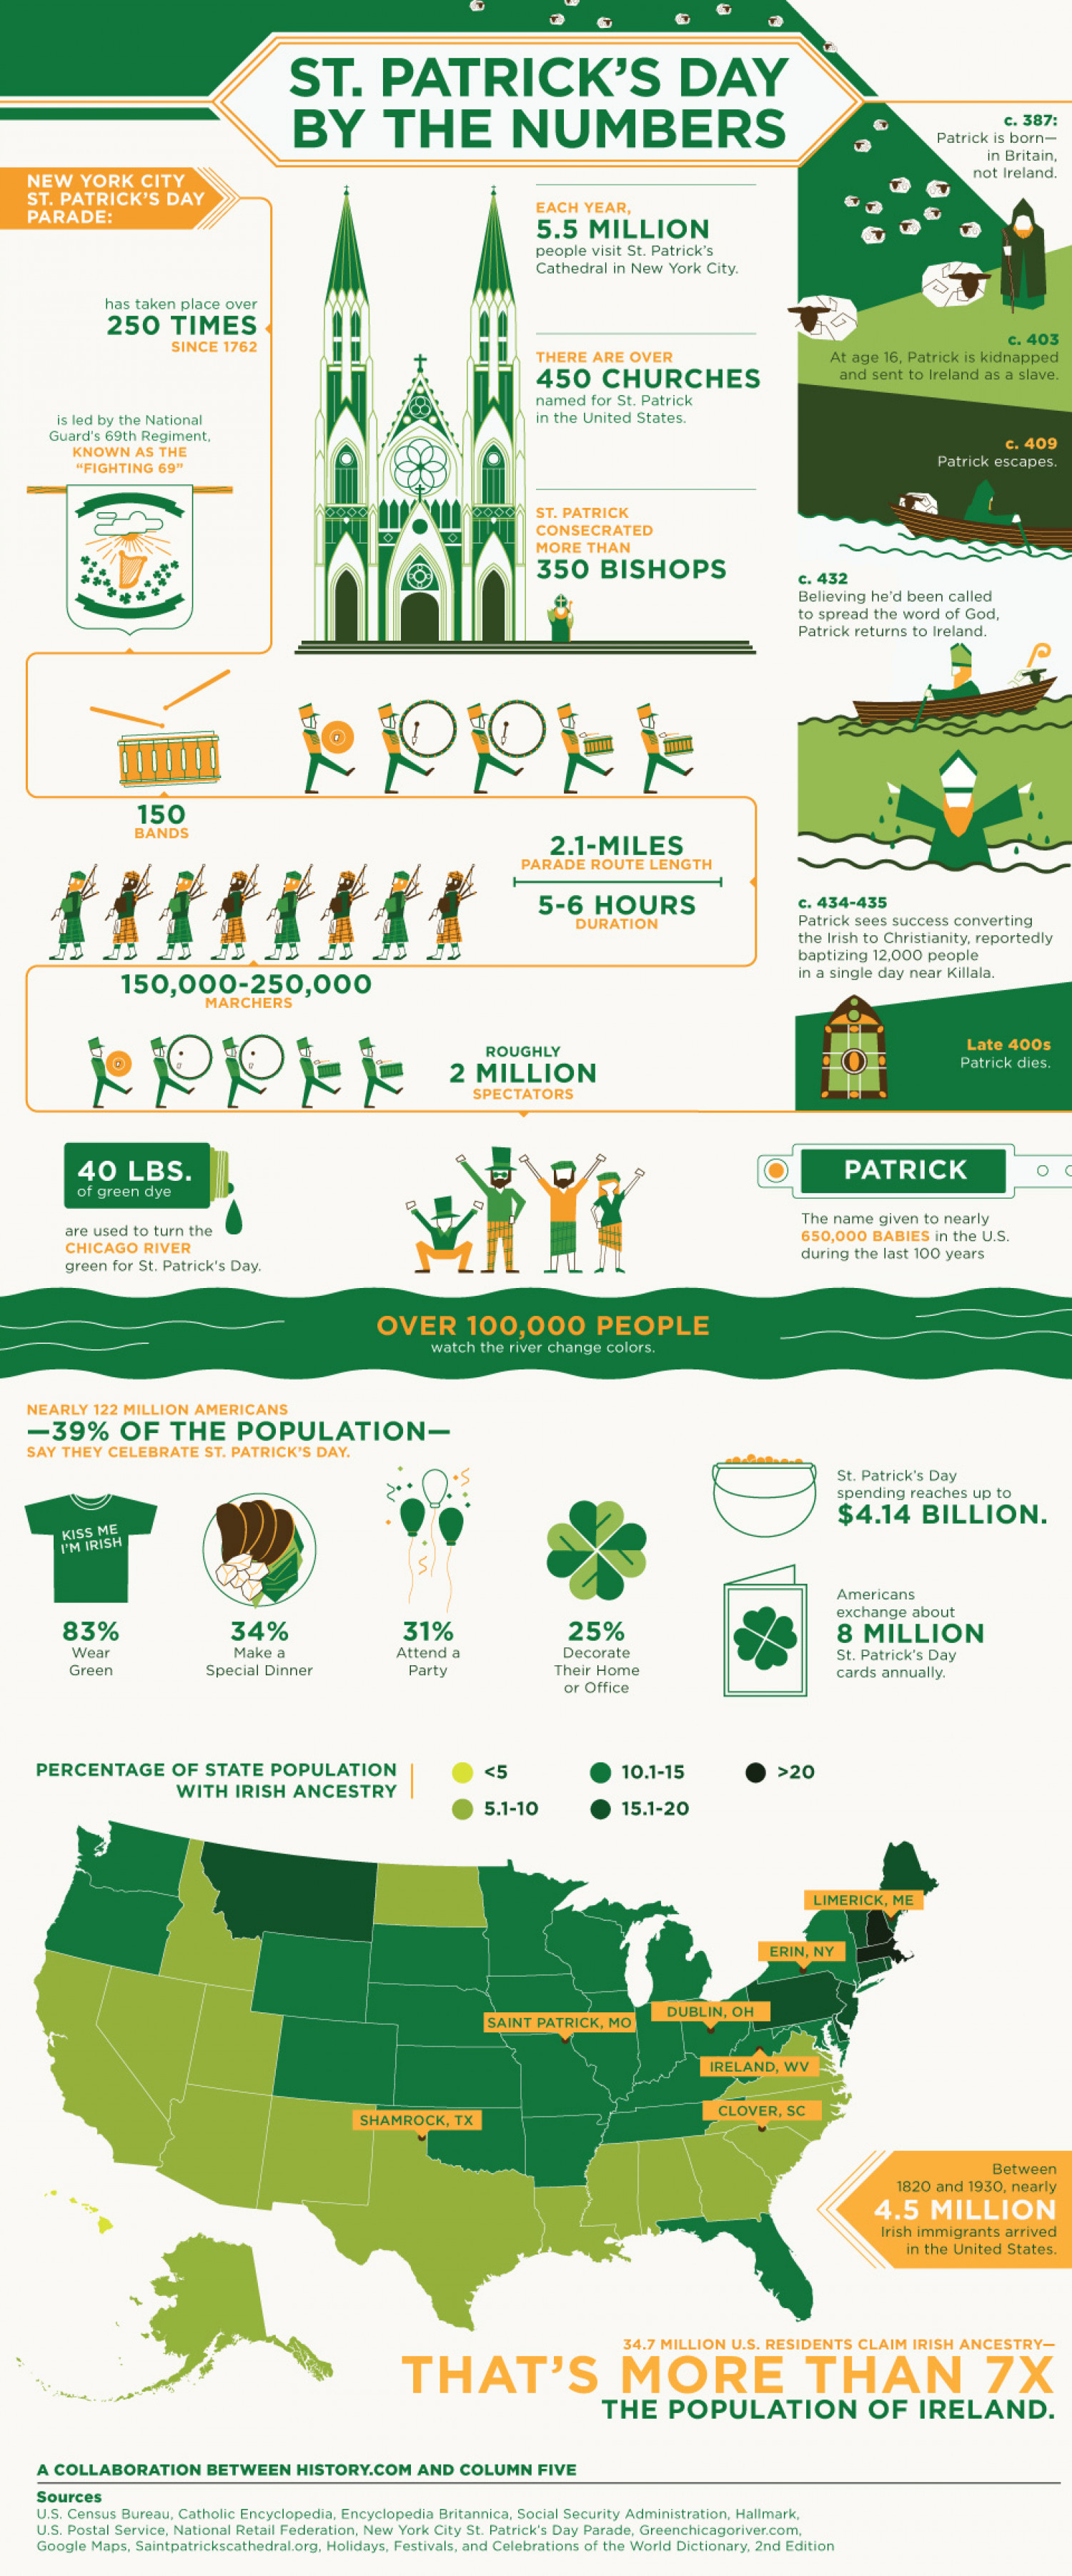 http://thumbnails.visually.netdna-cdn.com/st-patricks-day-by-the-numbers_502916241f2b5_w1500.jpg